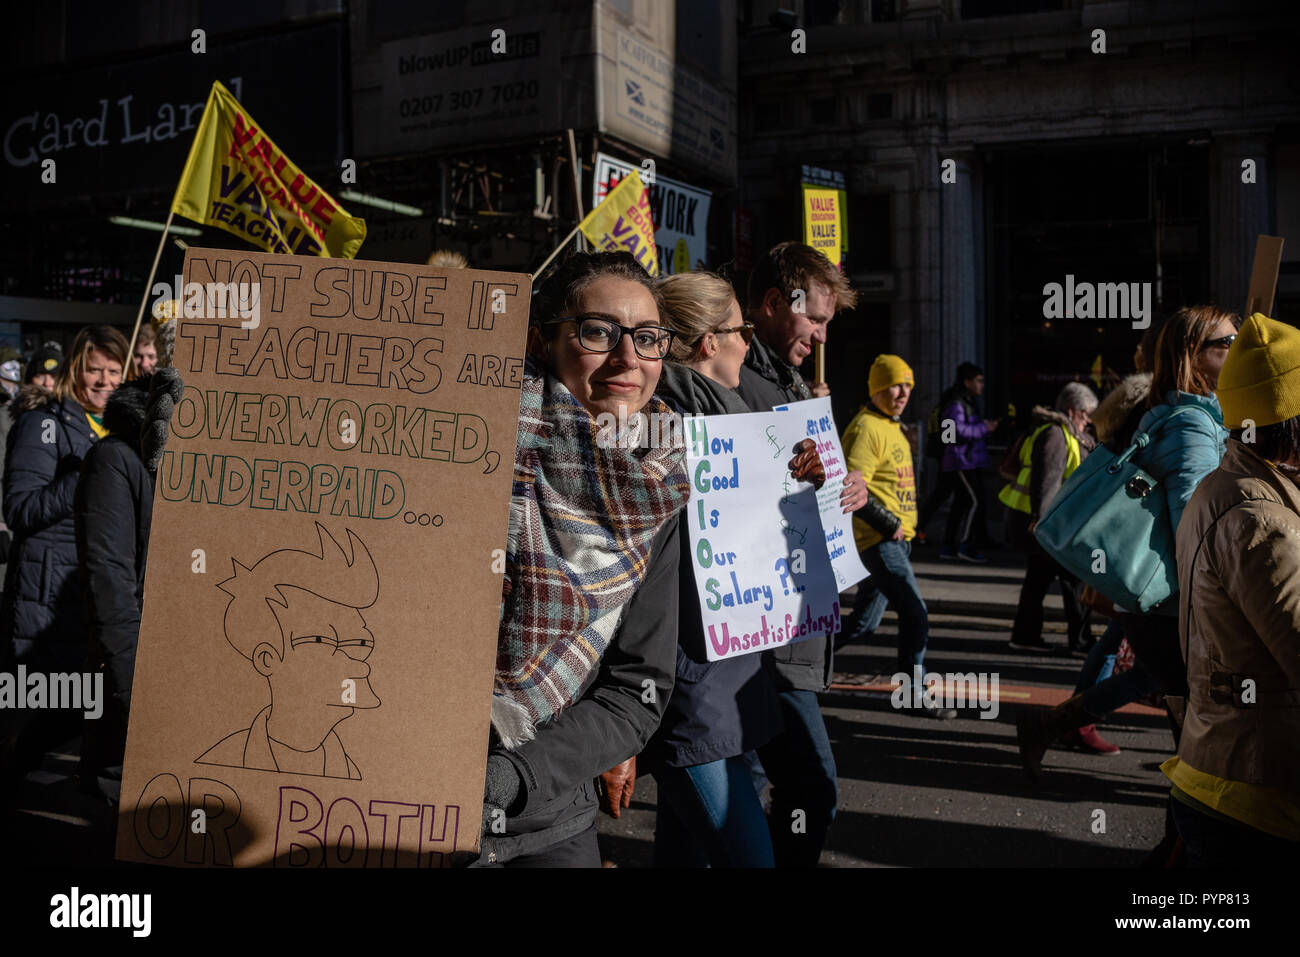 A Protester Holds Up A Meme Using The Character From The Tv Show